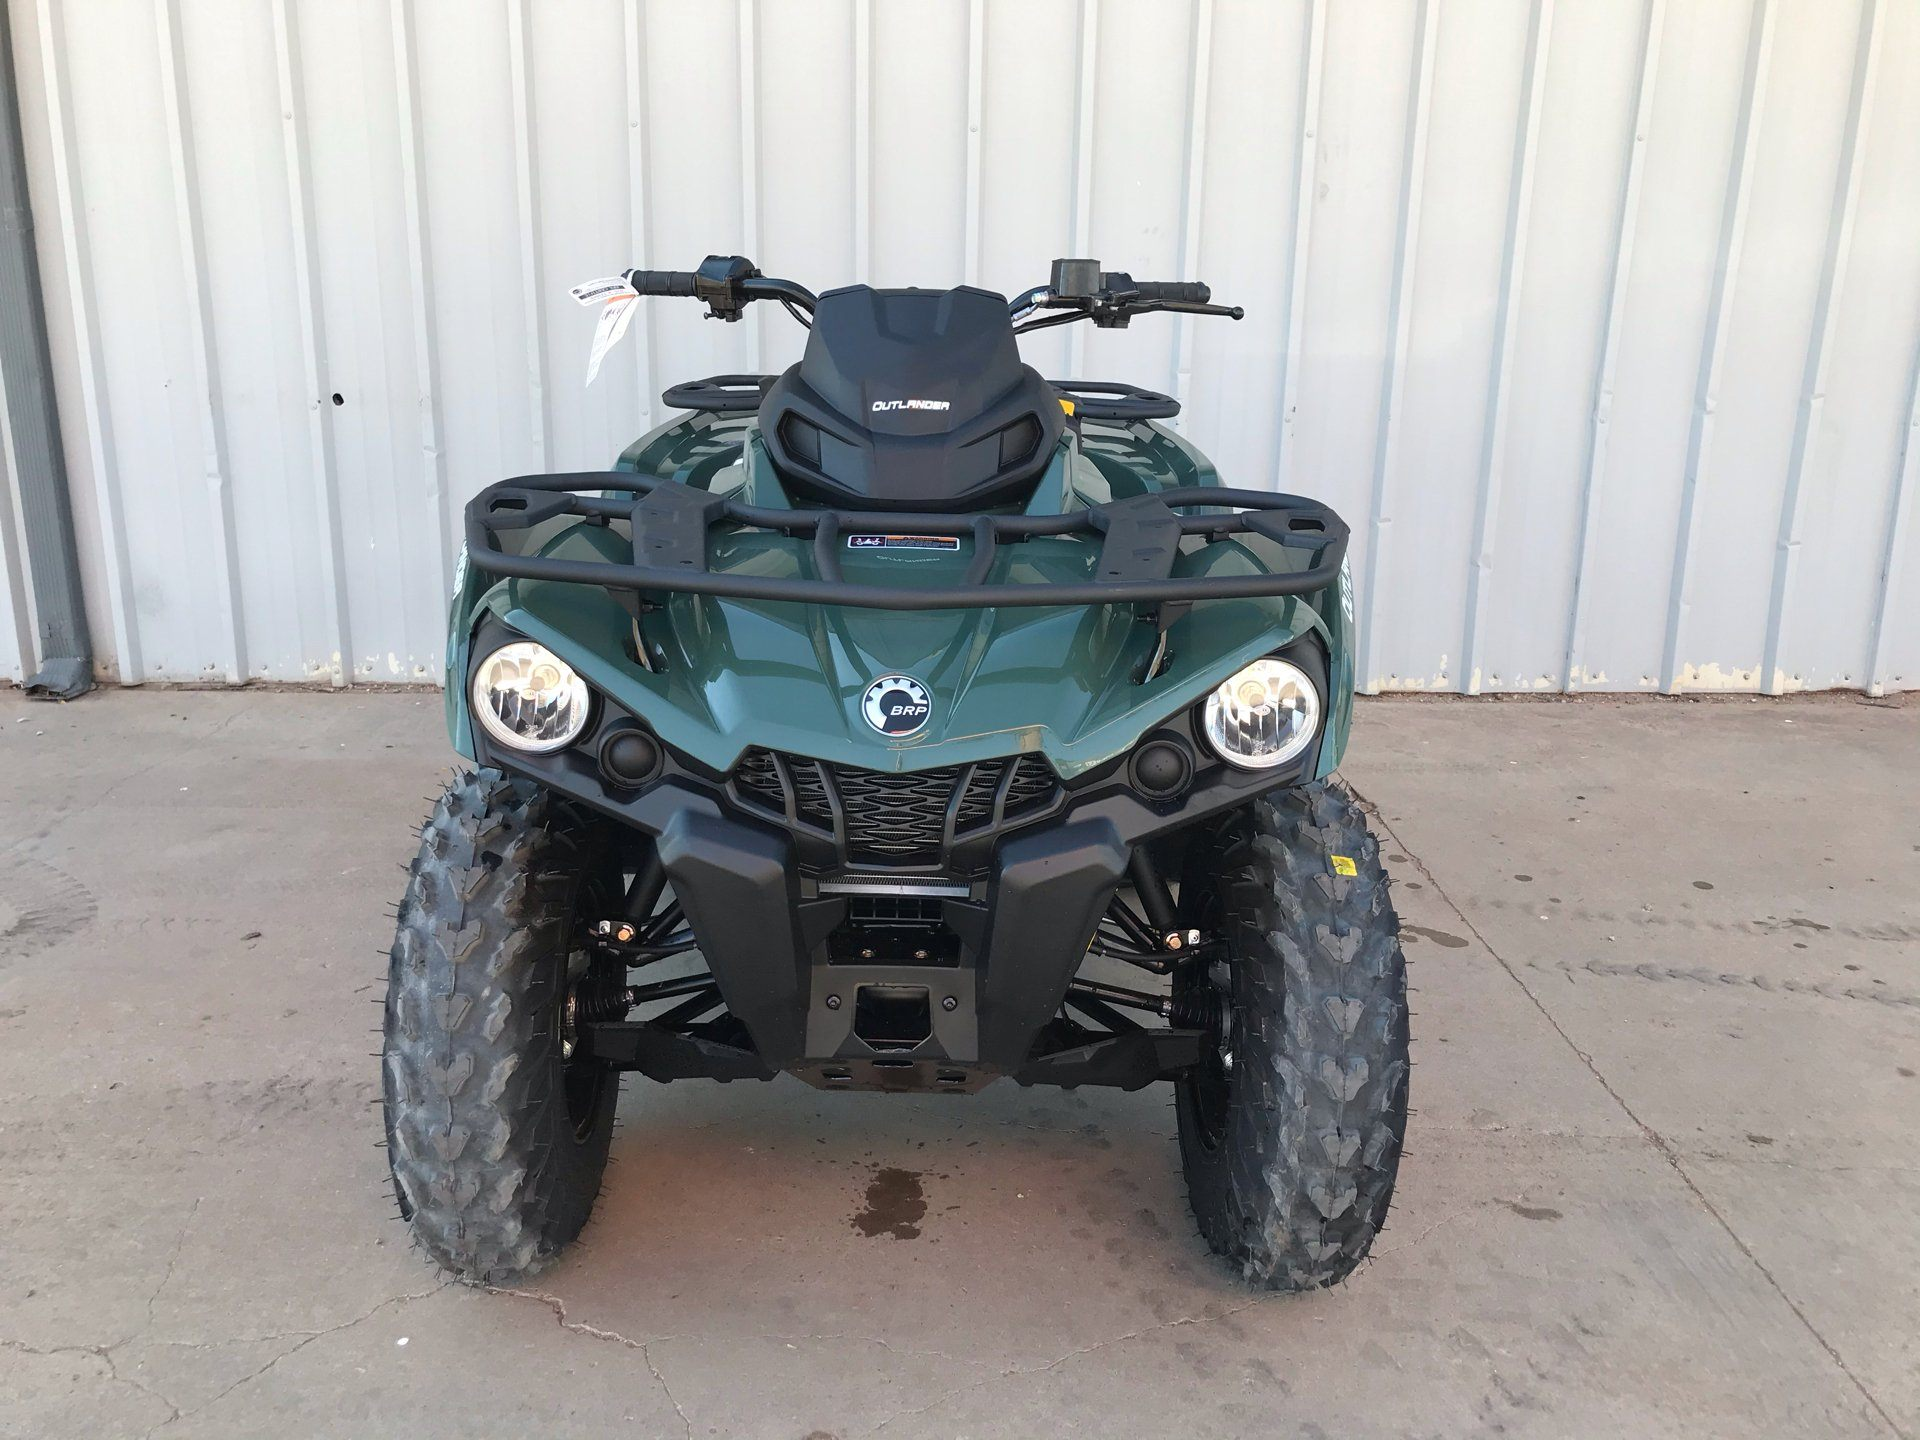 2021 Can-Am Outlander DPS 570 in Amarillo, Texas - Photo 2